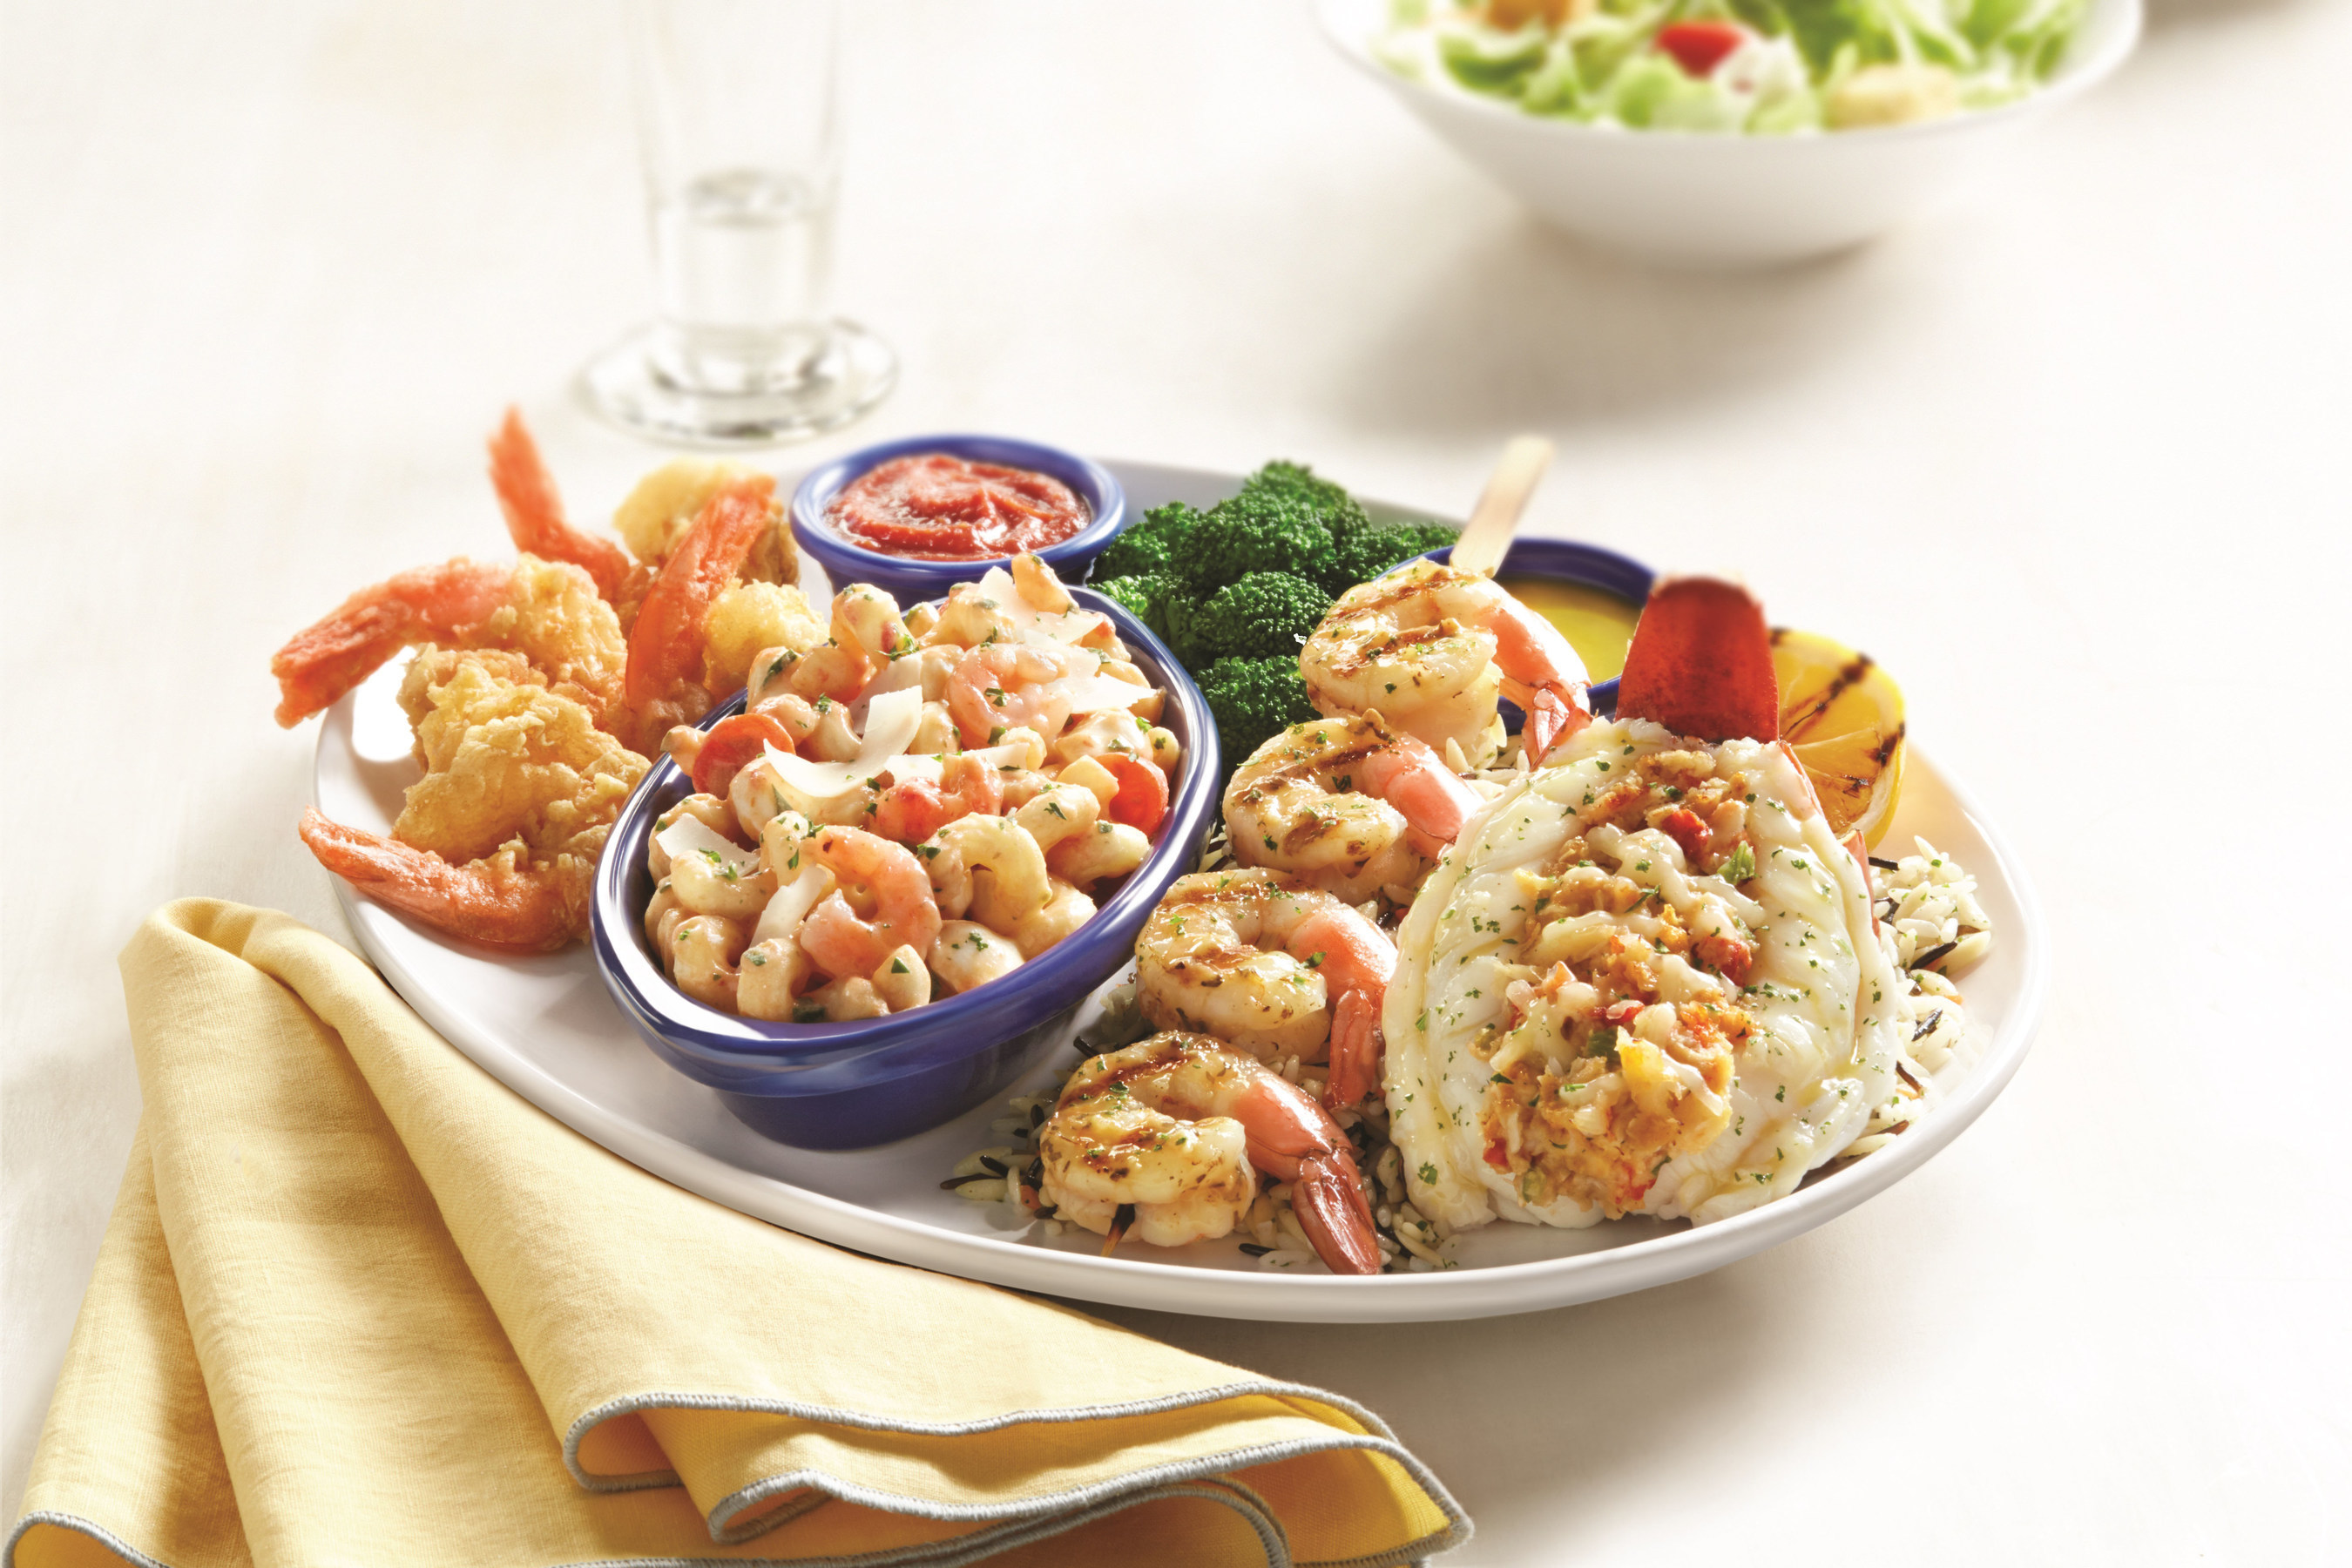 Red Lobster's new Lobster and Shrimp Overboard(TM) pairs a roasted and stuffed Maine lobster tail with a garlic-grilled jumbo shrimp skewer, Langostino Lobster and Shrimp Caprese Pasta and hand-battered jumbo shrimp.